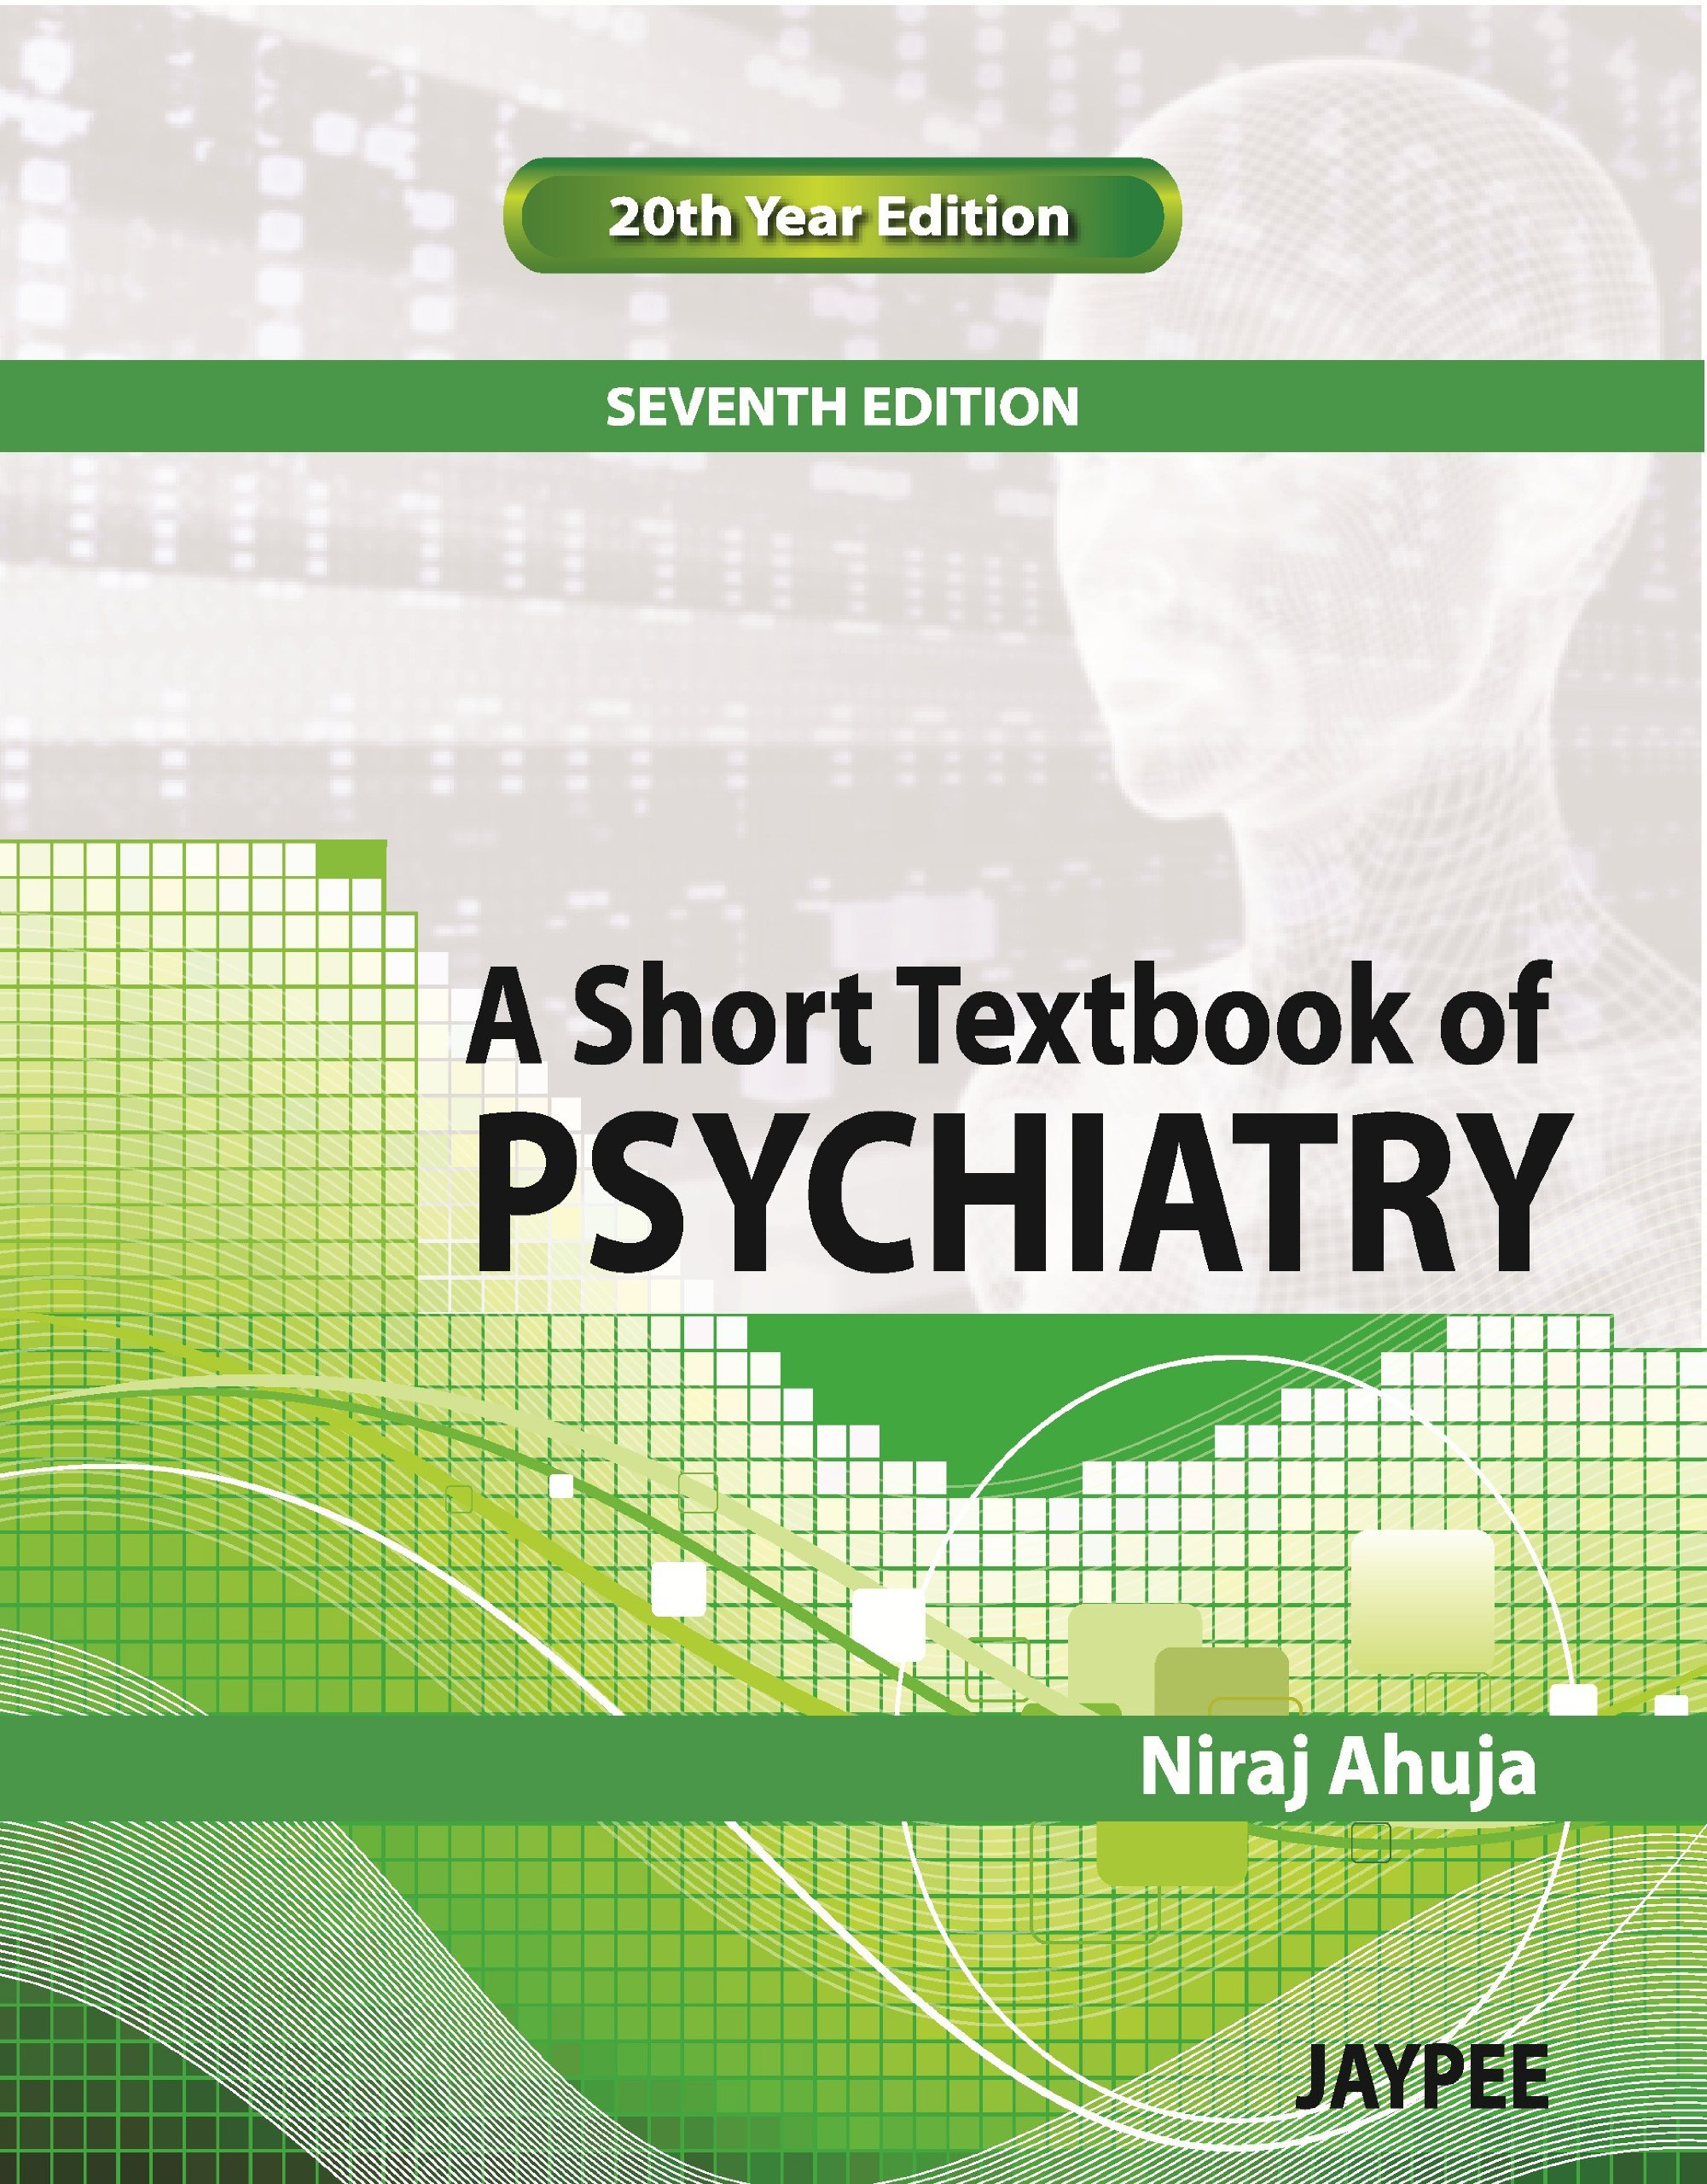 Buy A Short Textbook Of Psychiatry Book Online at Low Prices in India | A  Short Textbook Of Psychiatry Reviews & Ratings - Amazon.in